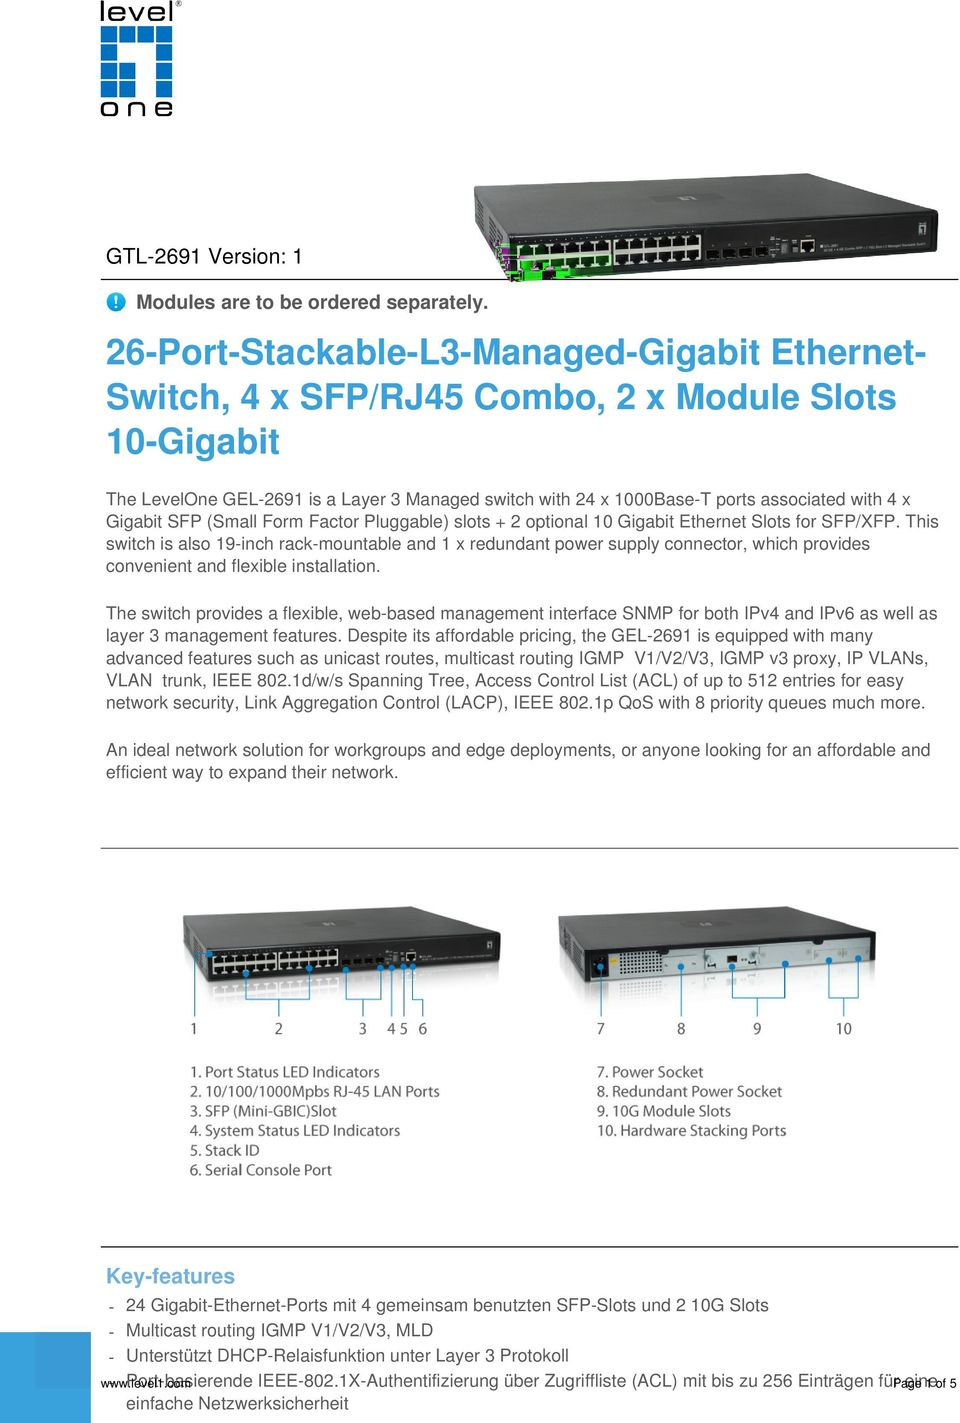 Gigabit SFP (Small Form Factor Pluggable) slots + 2 optional 10 Gigabit Ethernet Slots for SFP/XFP.